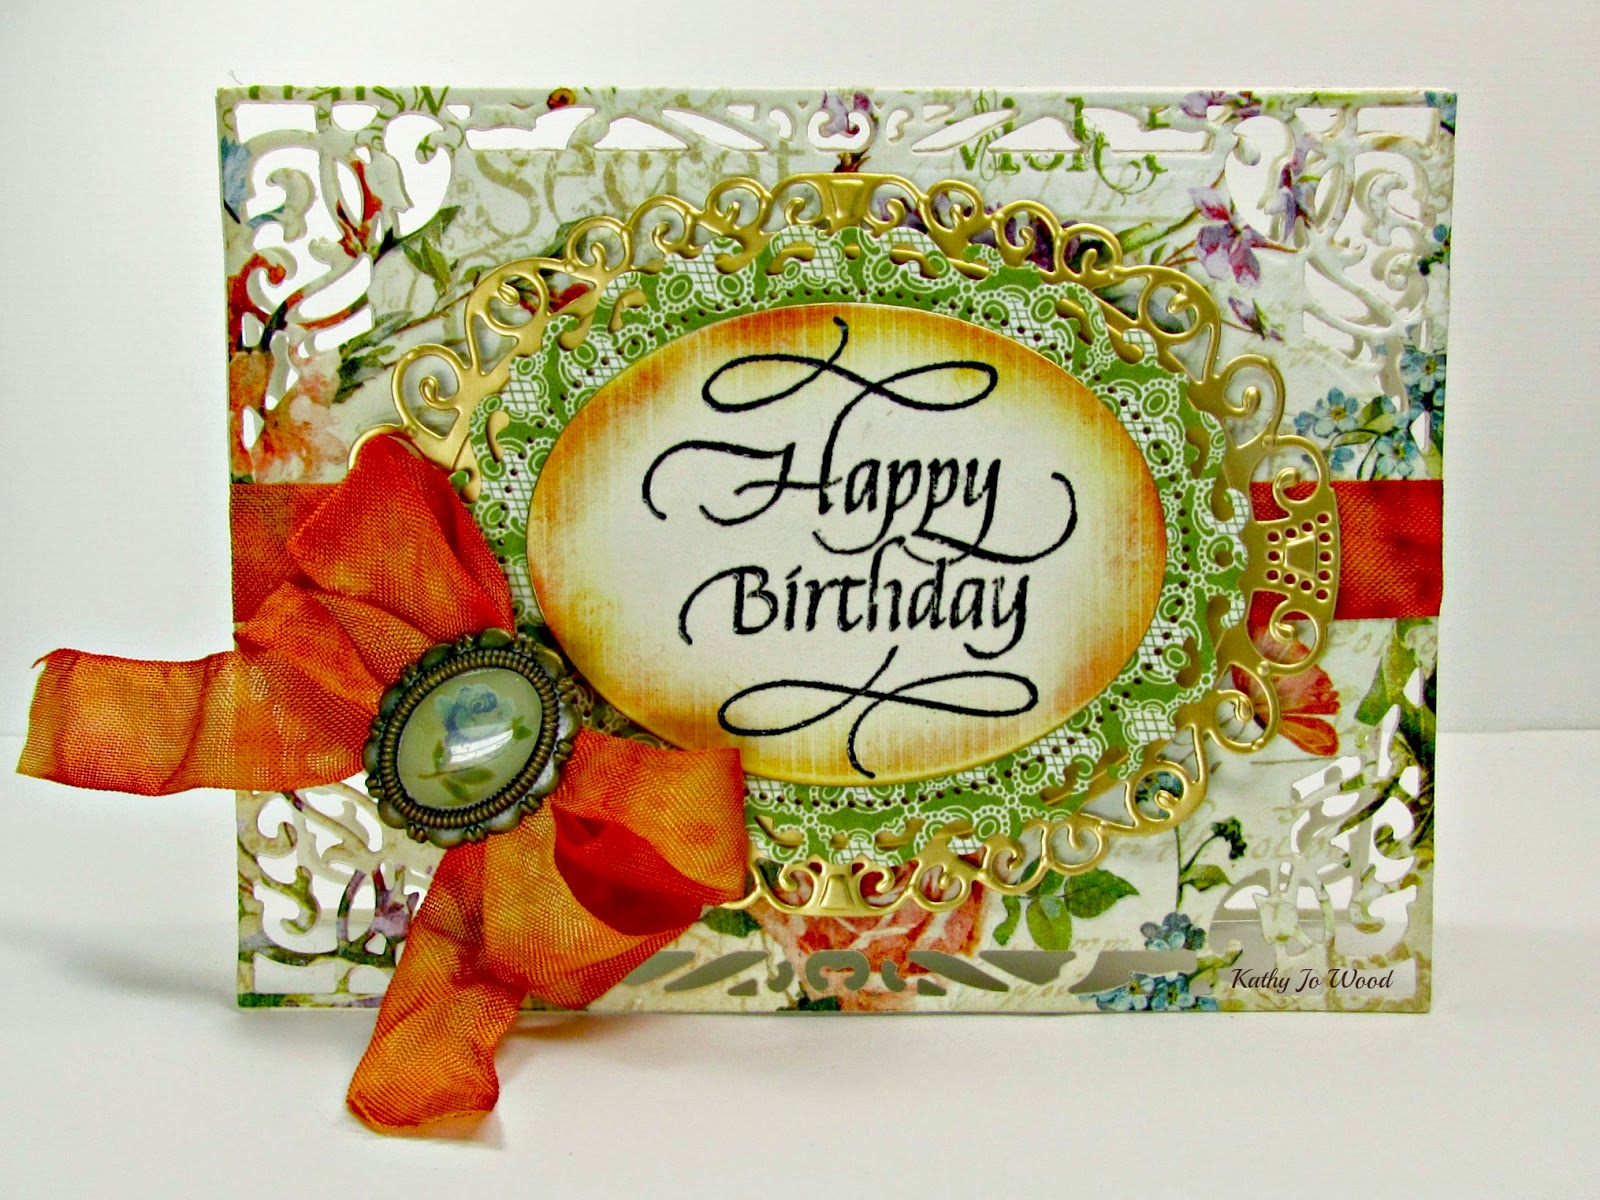 Quietfire creations one happy birthday card and two thank you cards the m4hsunfo